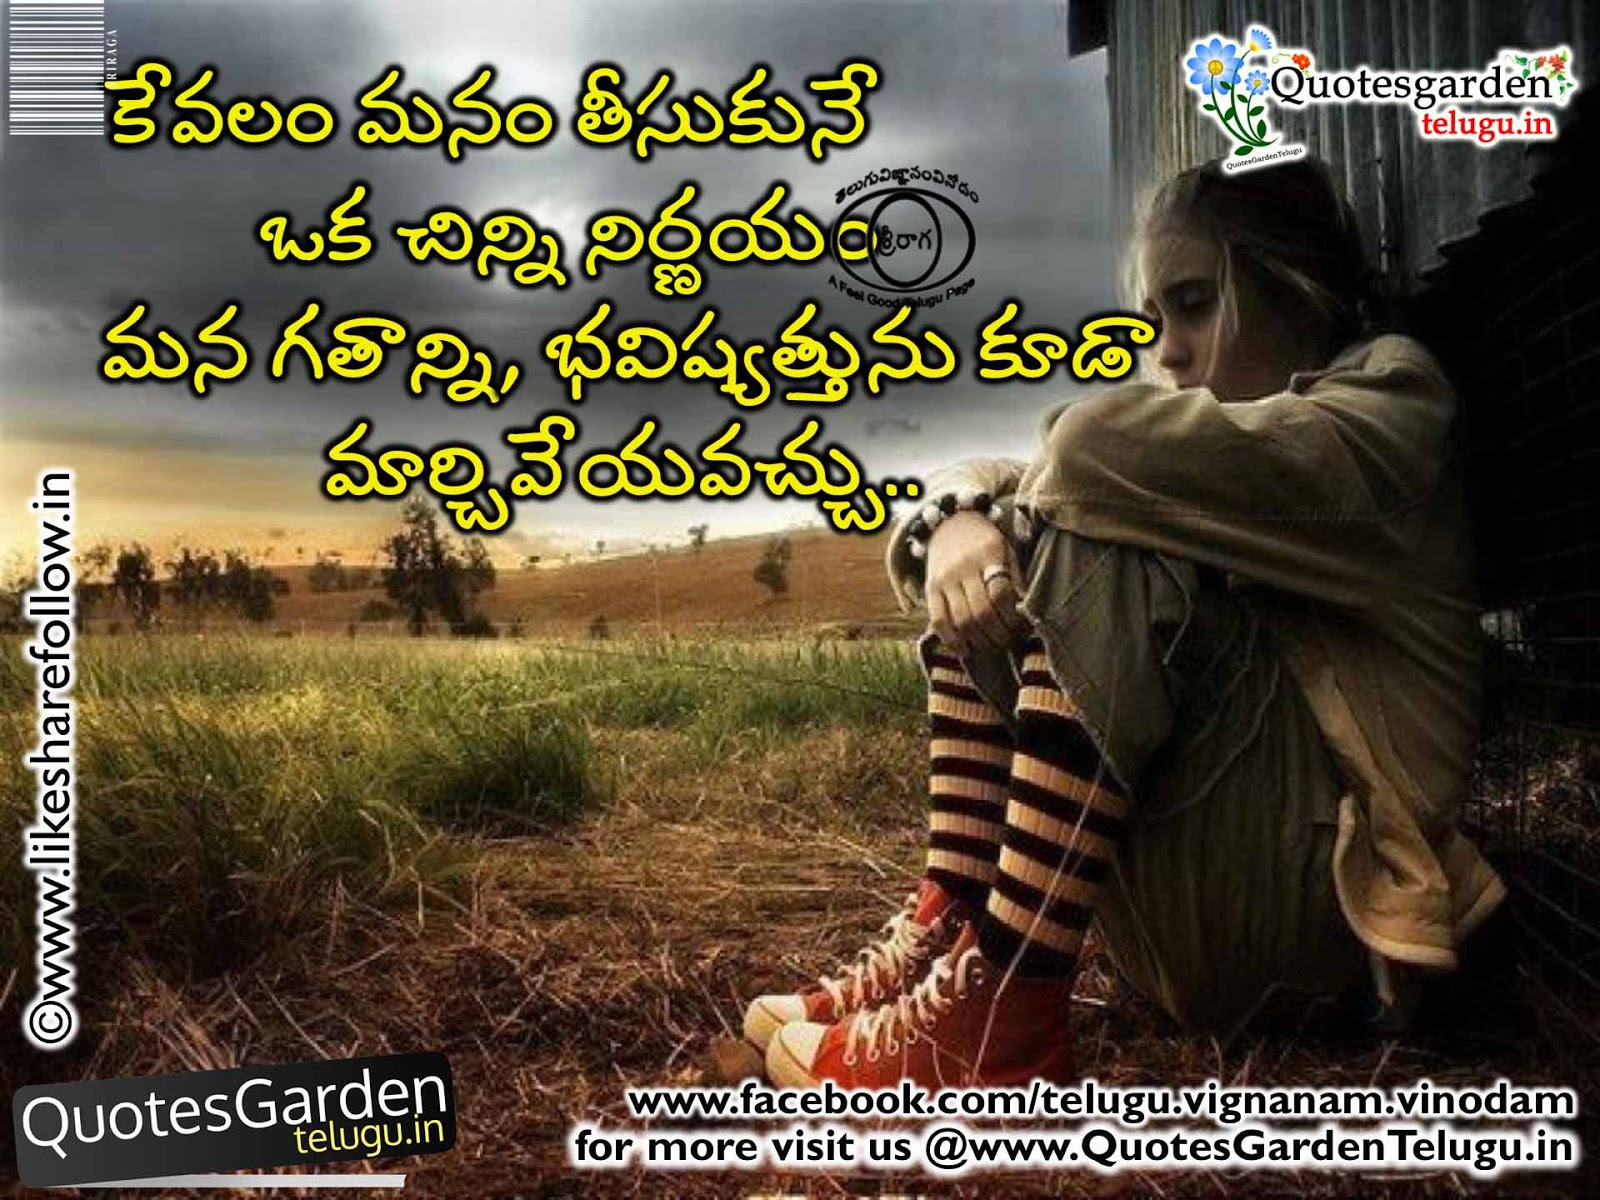 Telugu Life Quotes about love and life